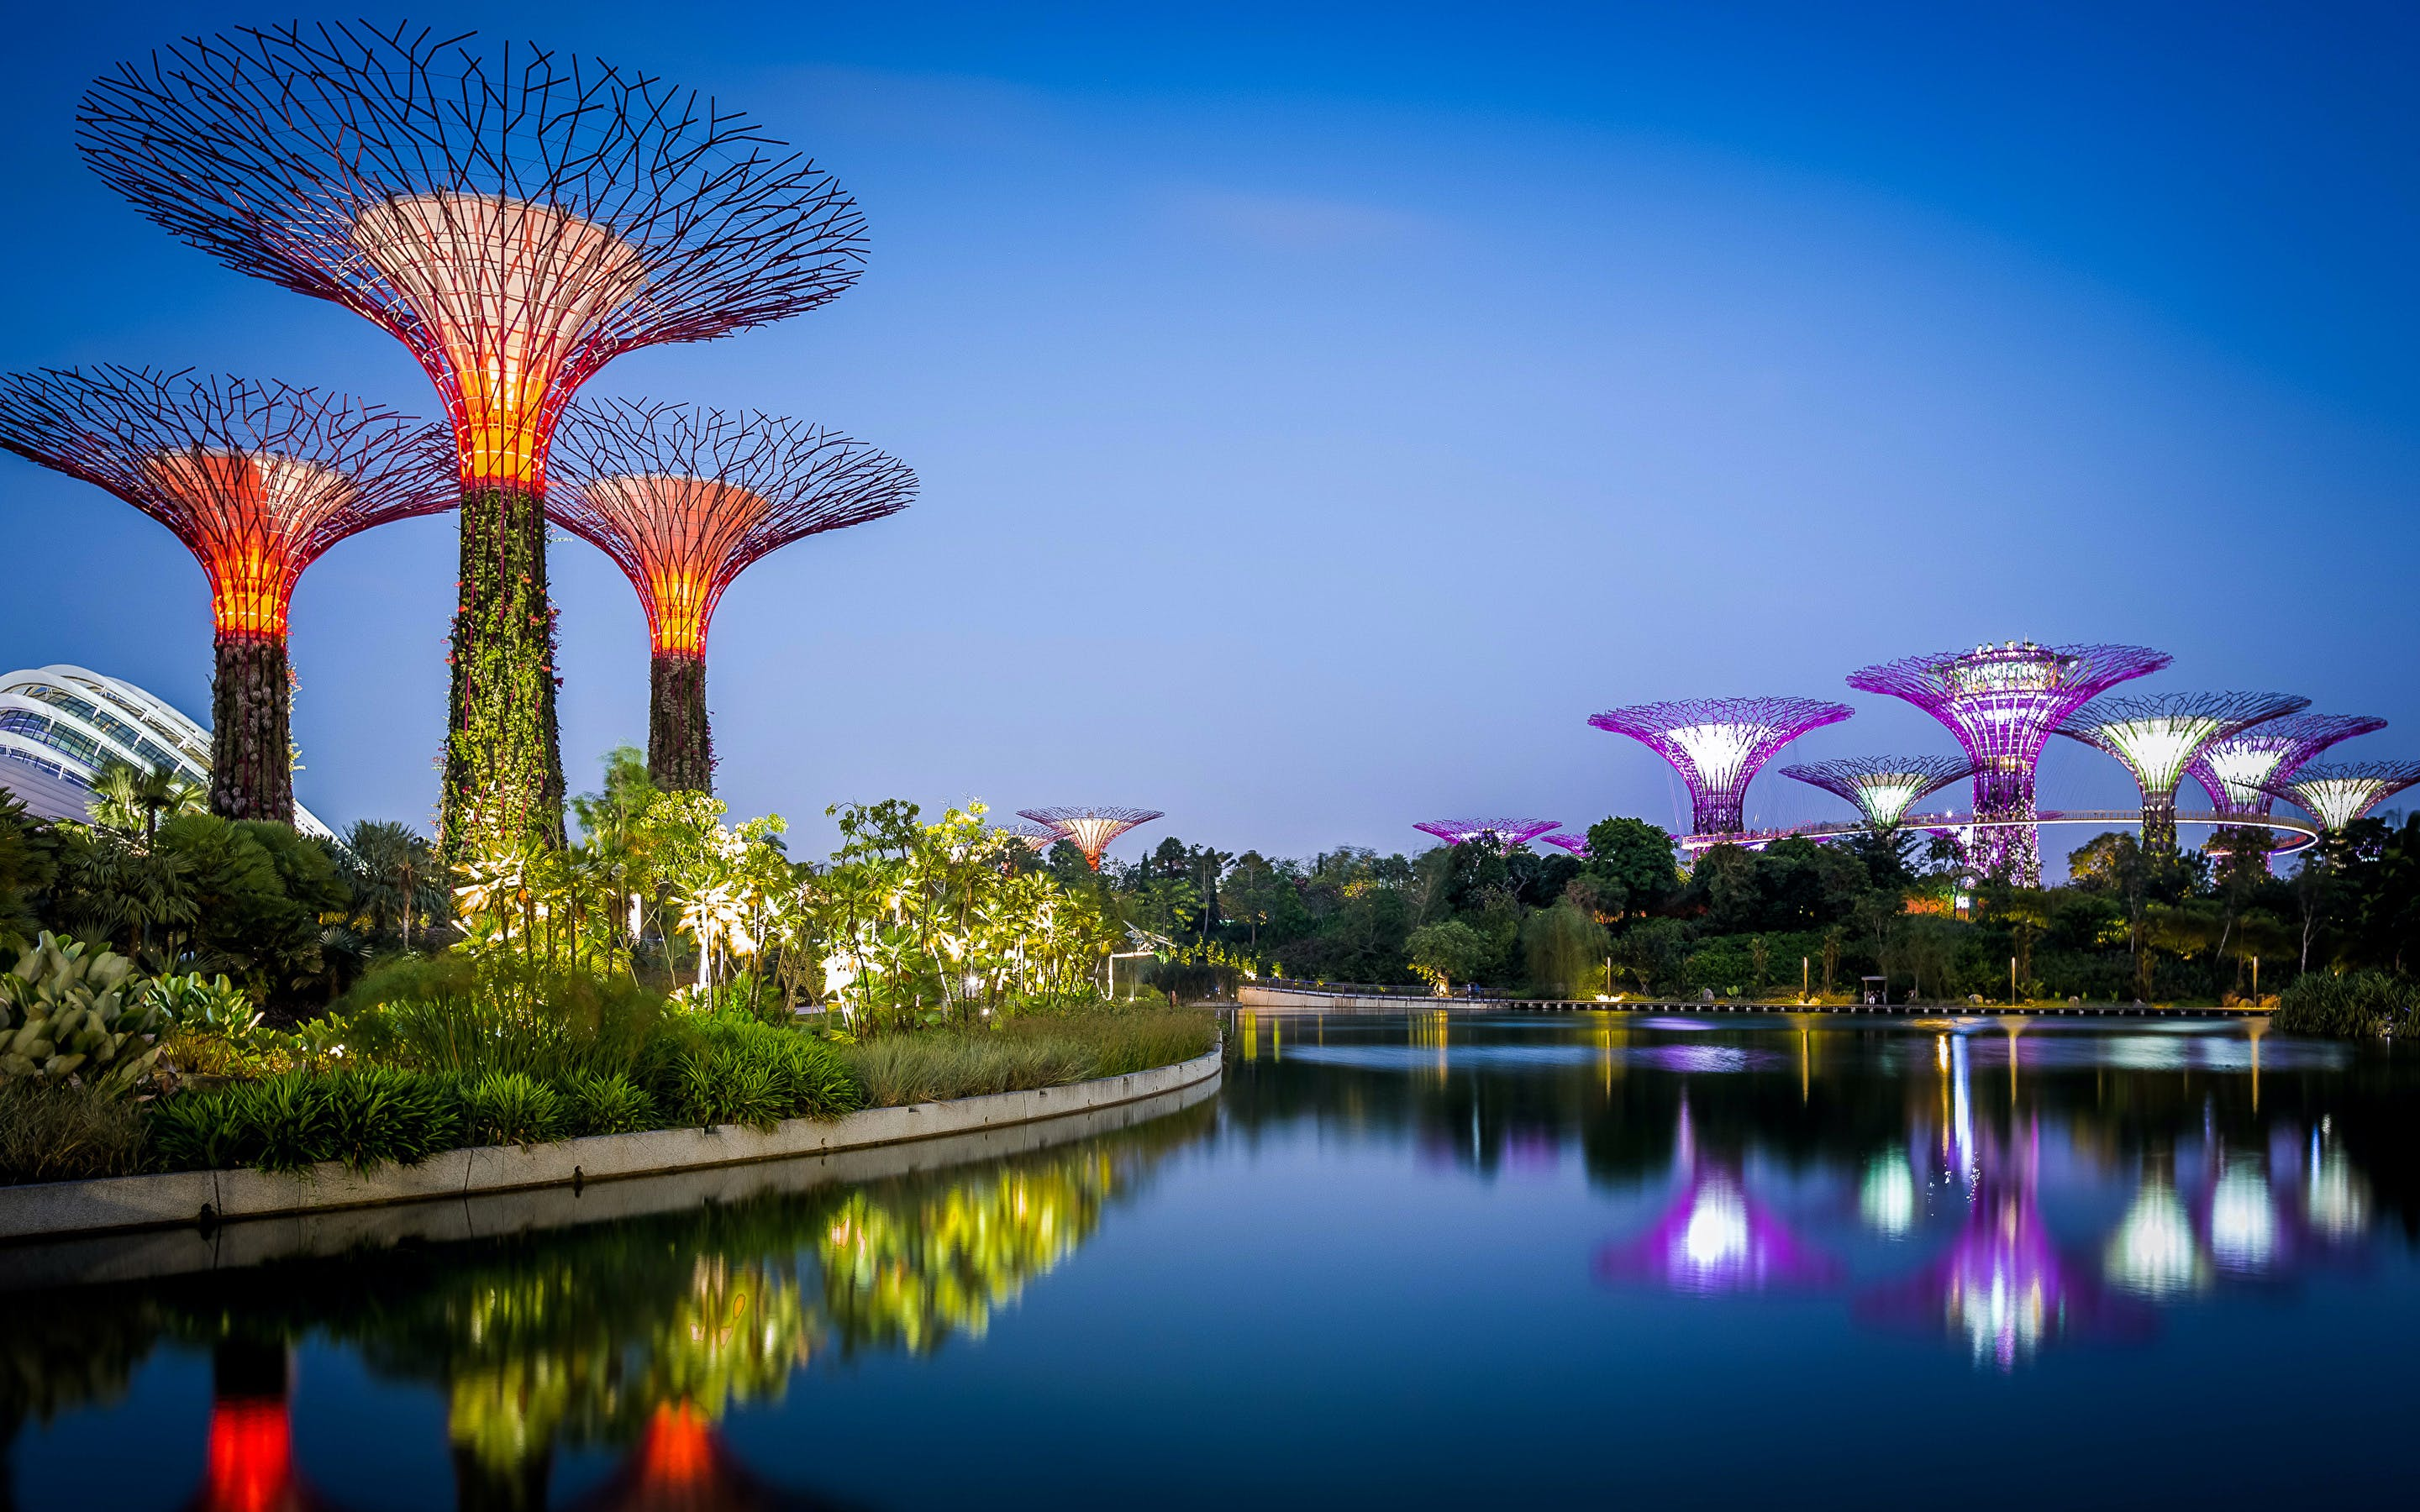 Gardens by the Bay Direct Entry Tickets